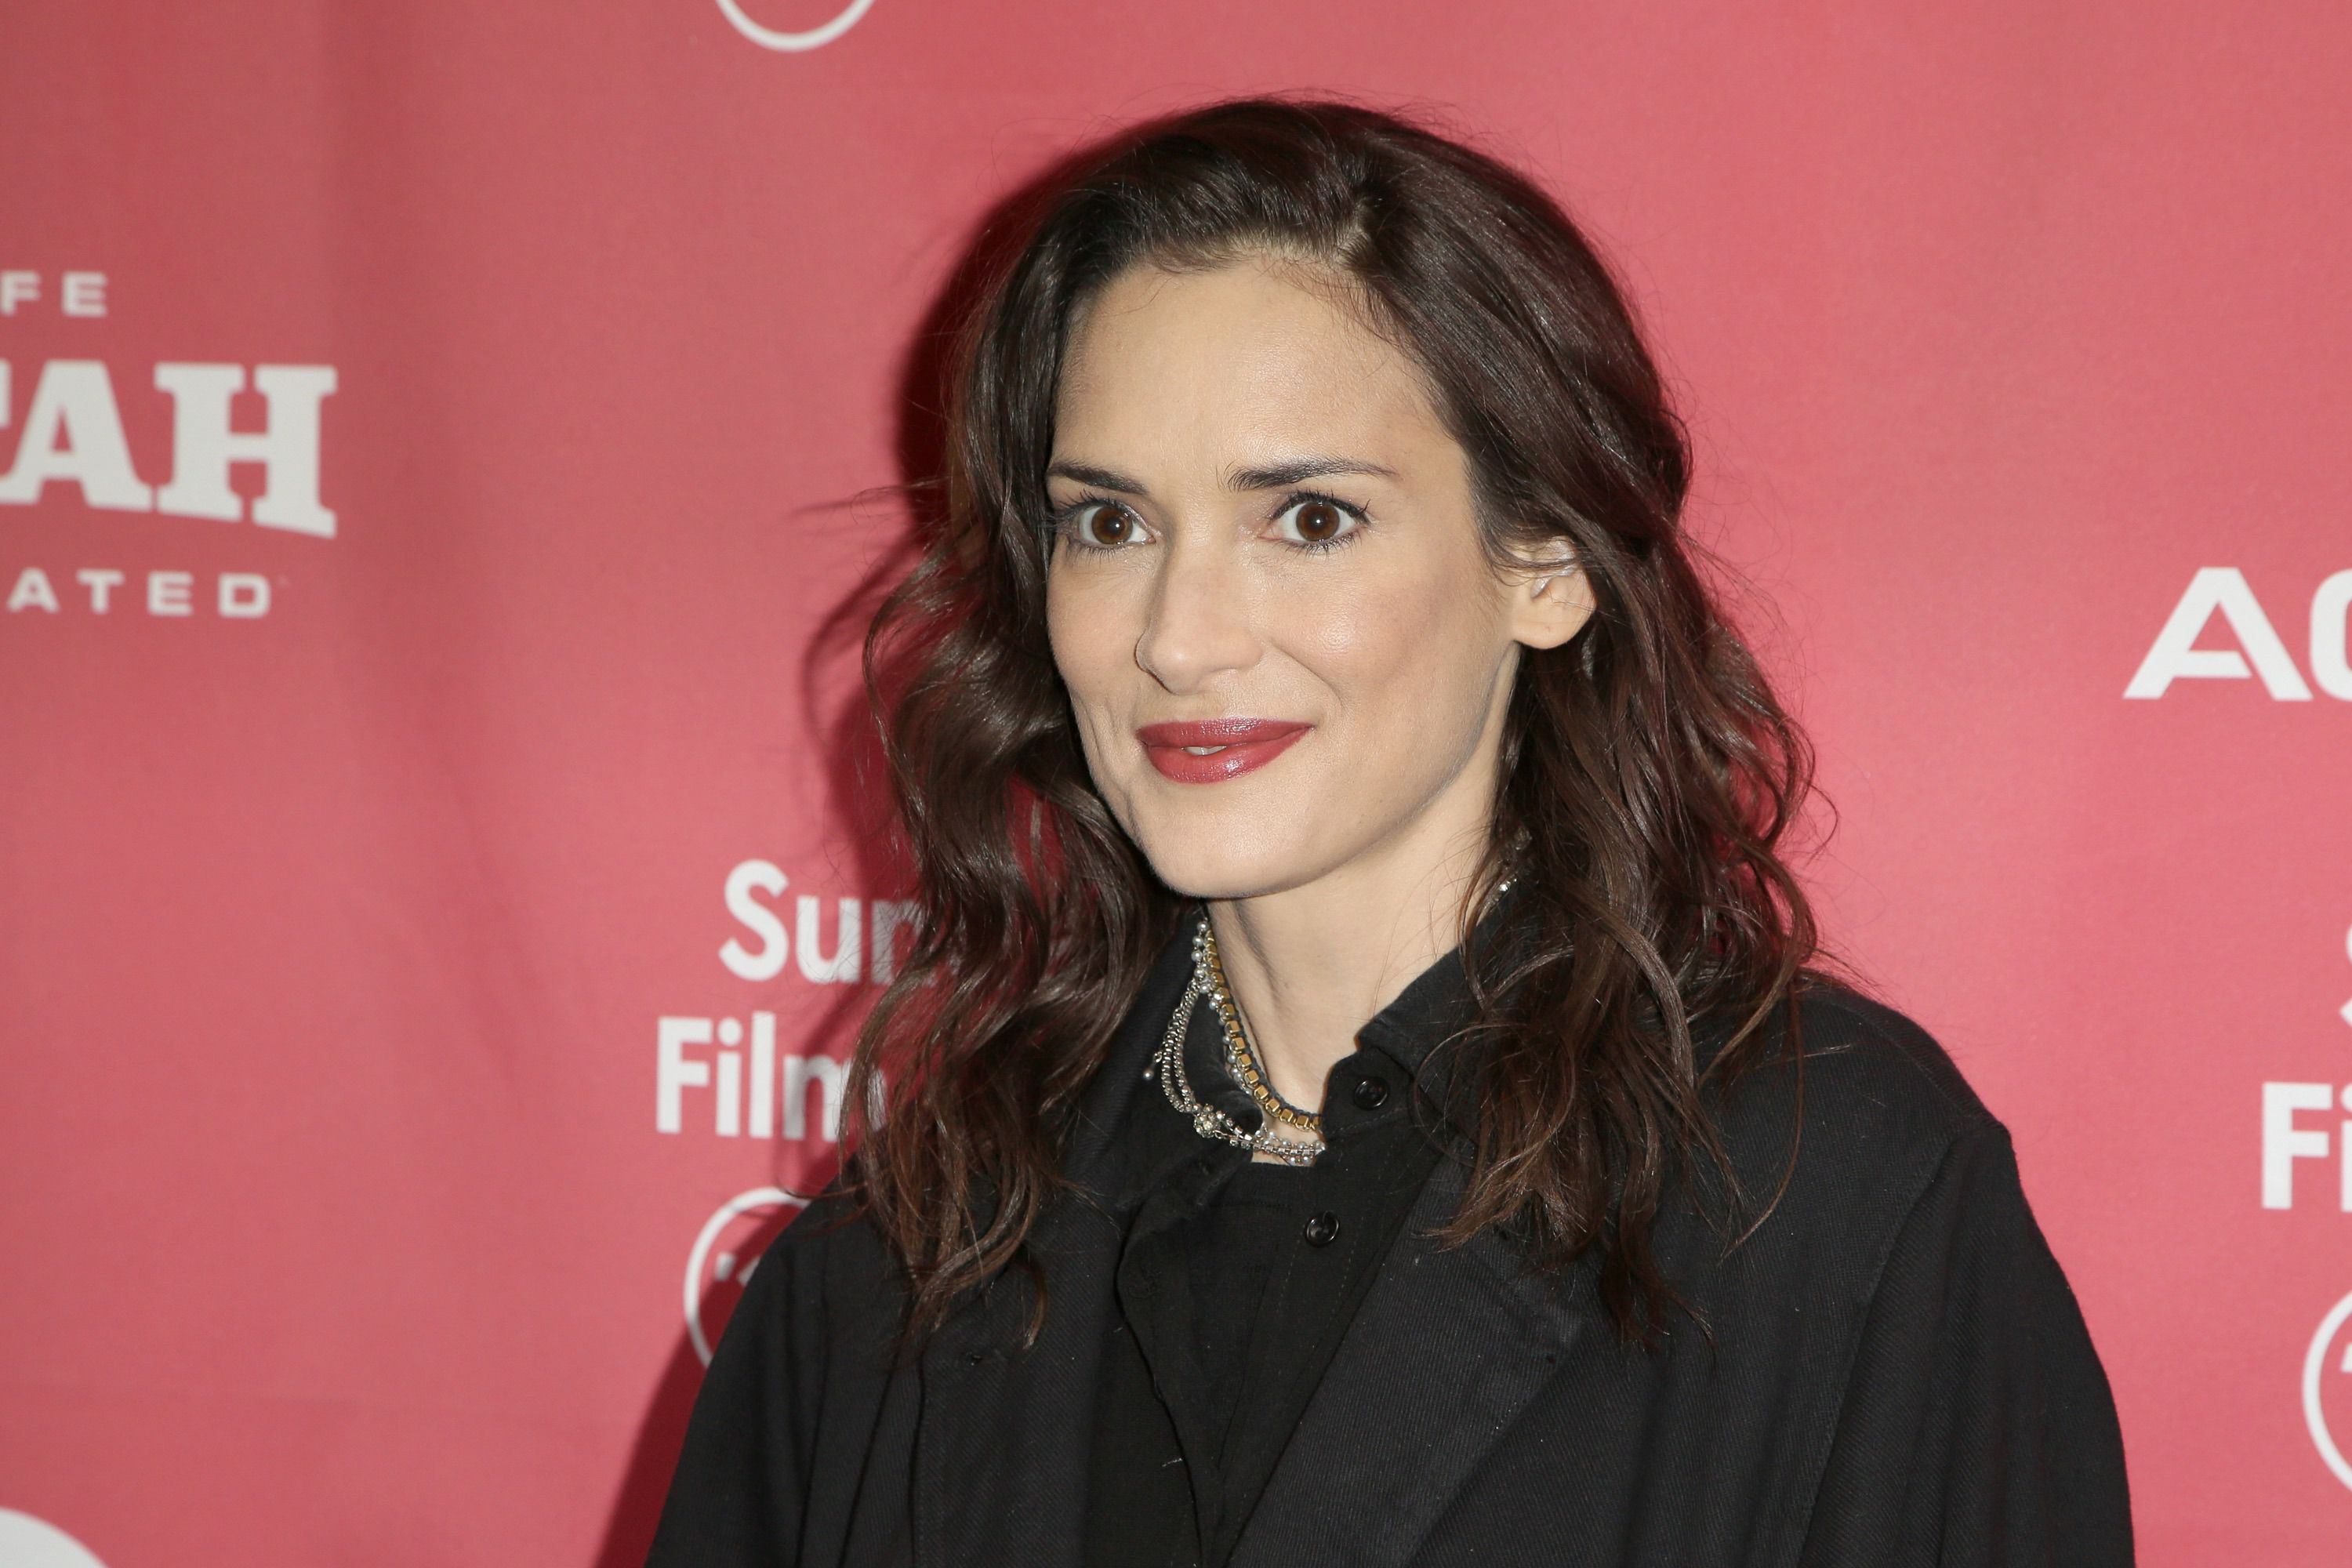 Winona Ryder shared the details of the affair with Johnny Depp 07/01/2016 60